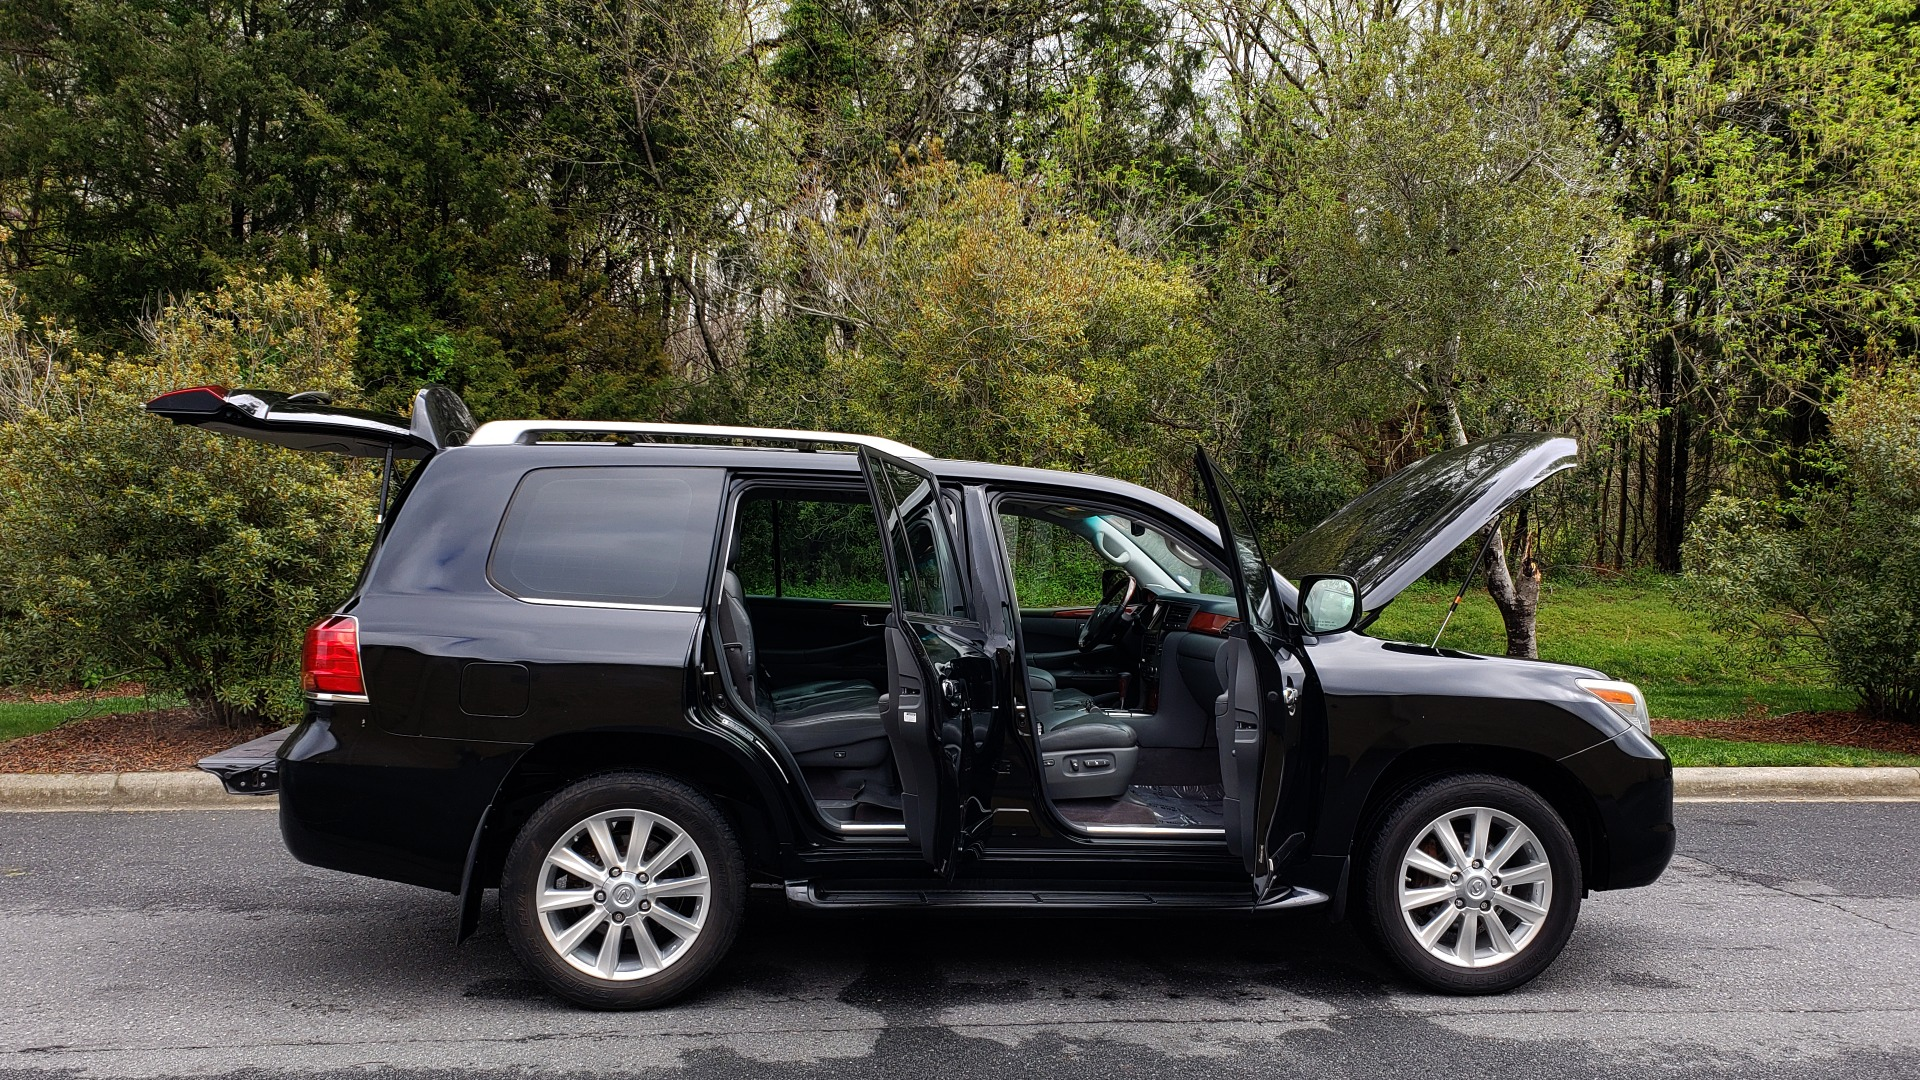 Used 2008 Lexus LX 570 4WD / TECH PKG / NAV / SUNROOF / MARK LEVINSON / PARK ASST for sale $22,995 at Formula Imports in Charlotte NC 28227 9